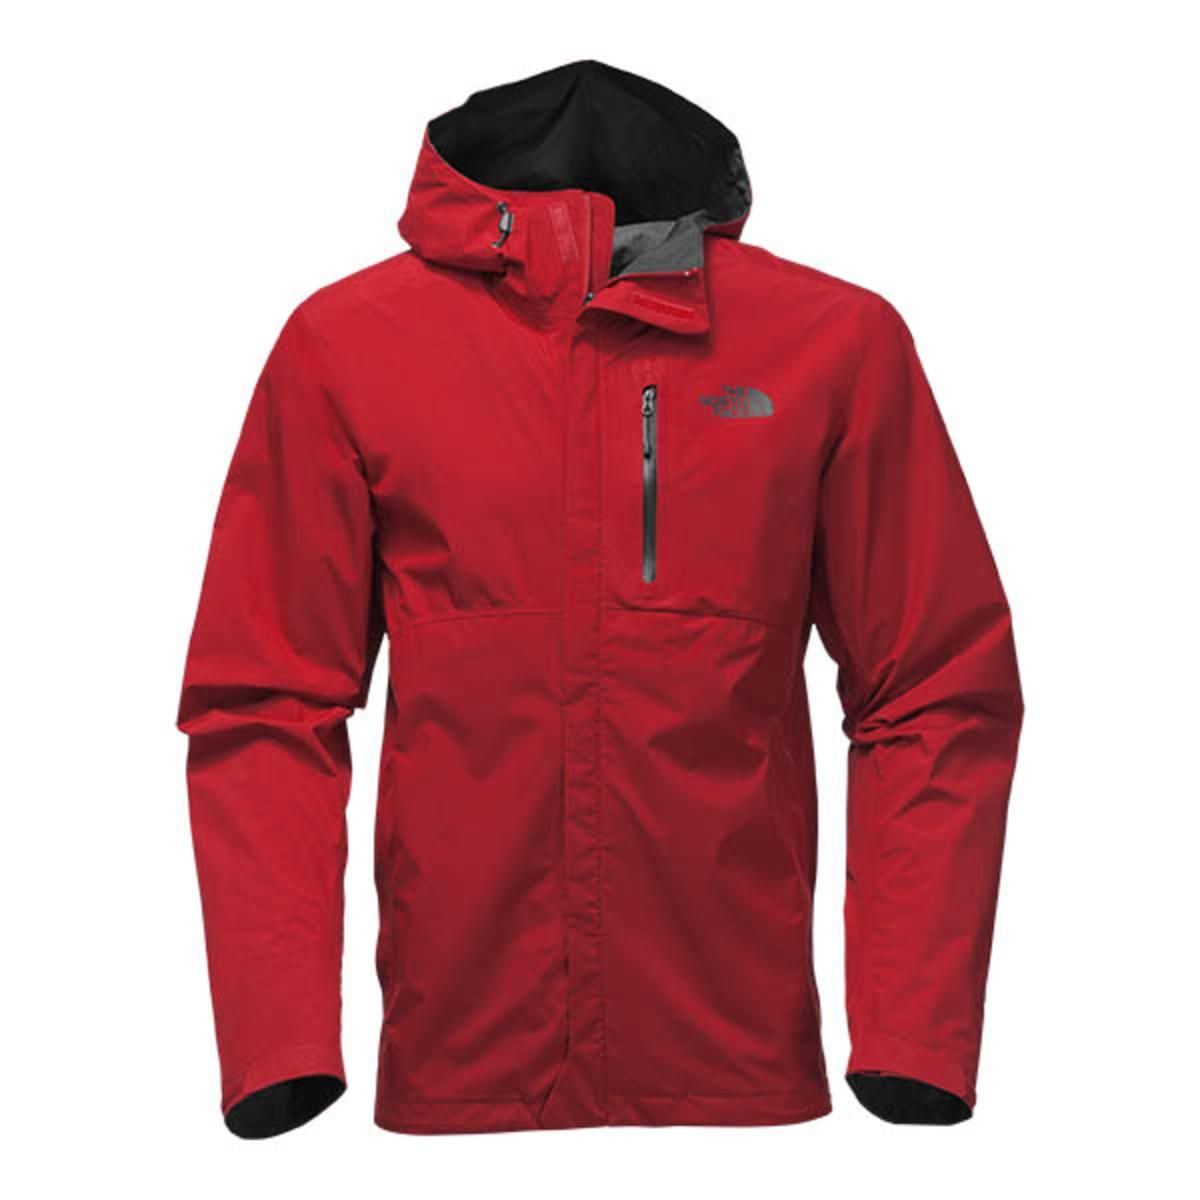 30181ec46c6a The North Face Men s Dryzzle Jacket - The Warming Store